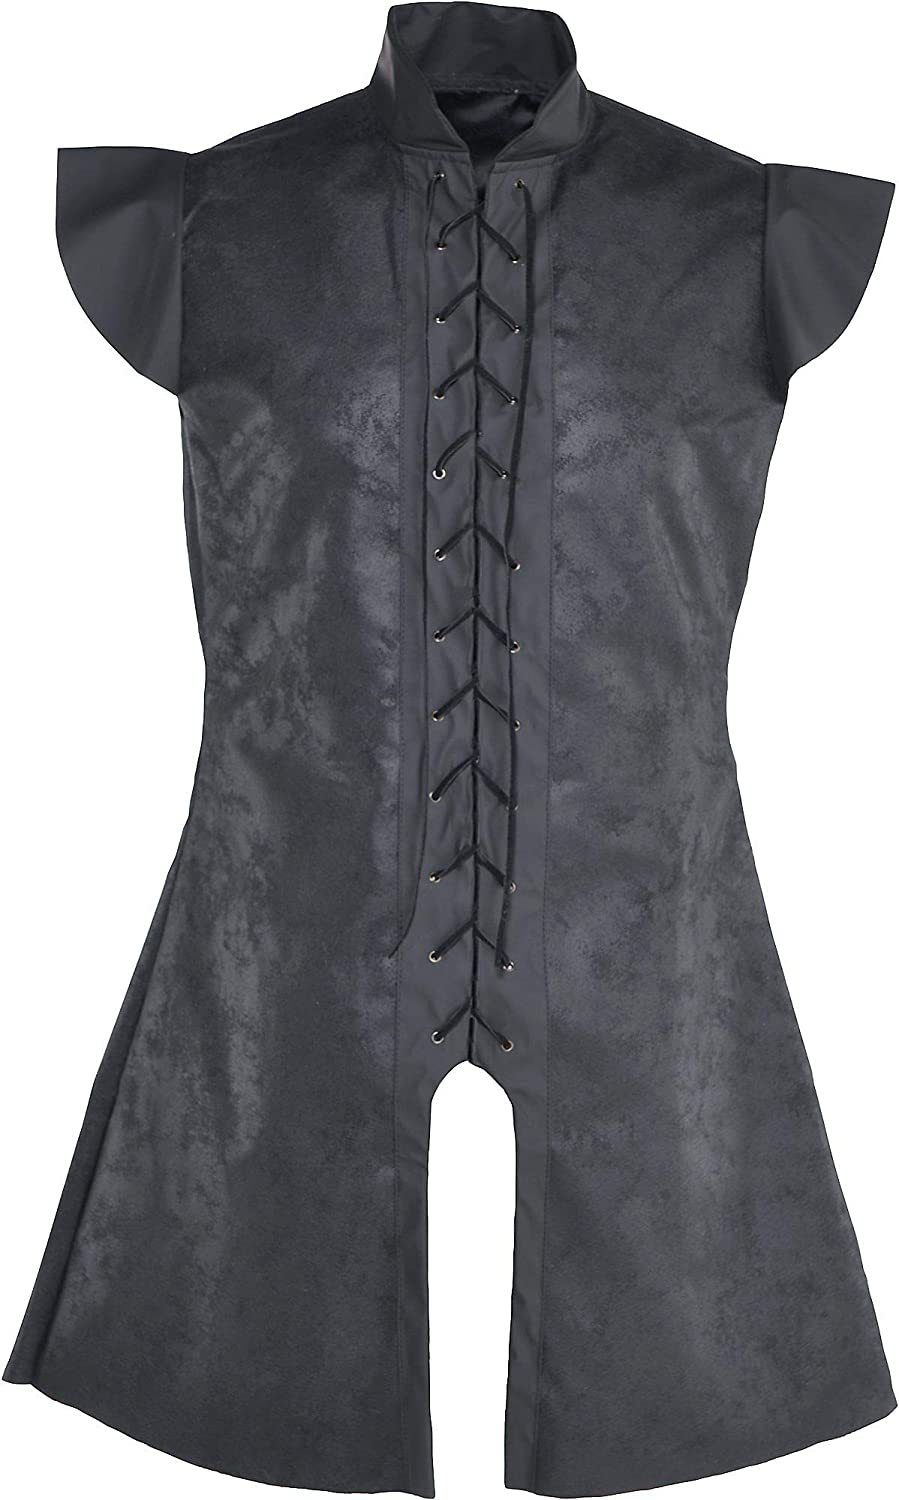 Amscan Max 68% OFF NEW 847298 Black Warrior Size Standard Tunic Adult